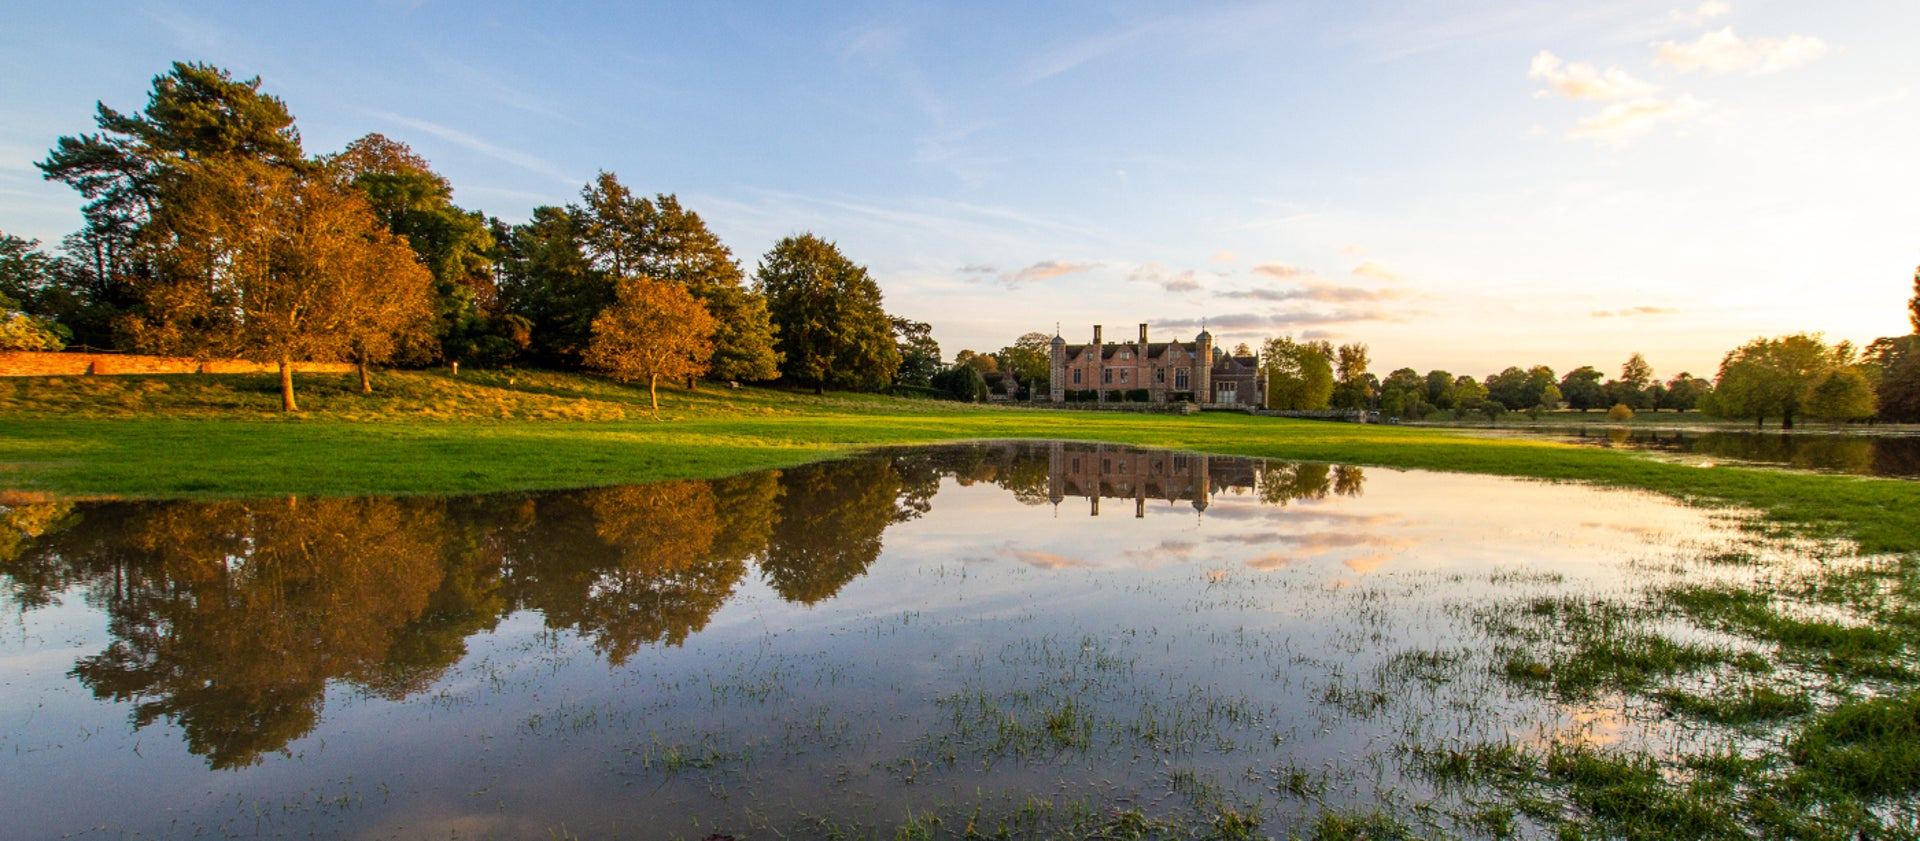 severe weather closure at charlecote park national trust